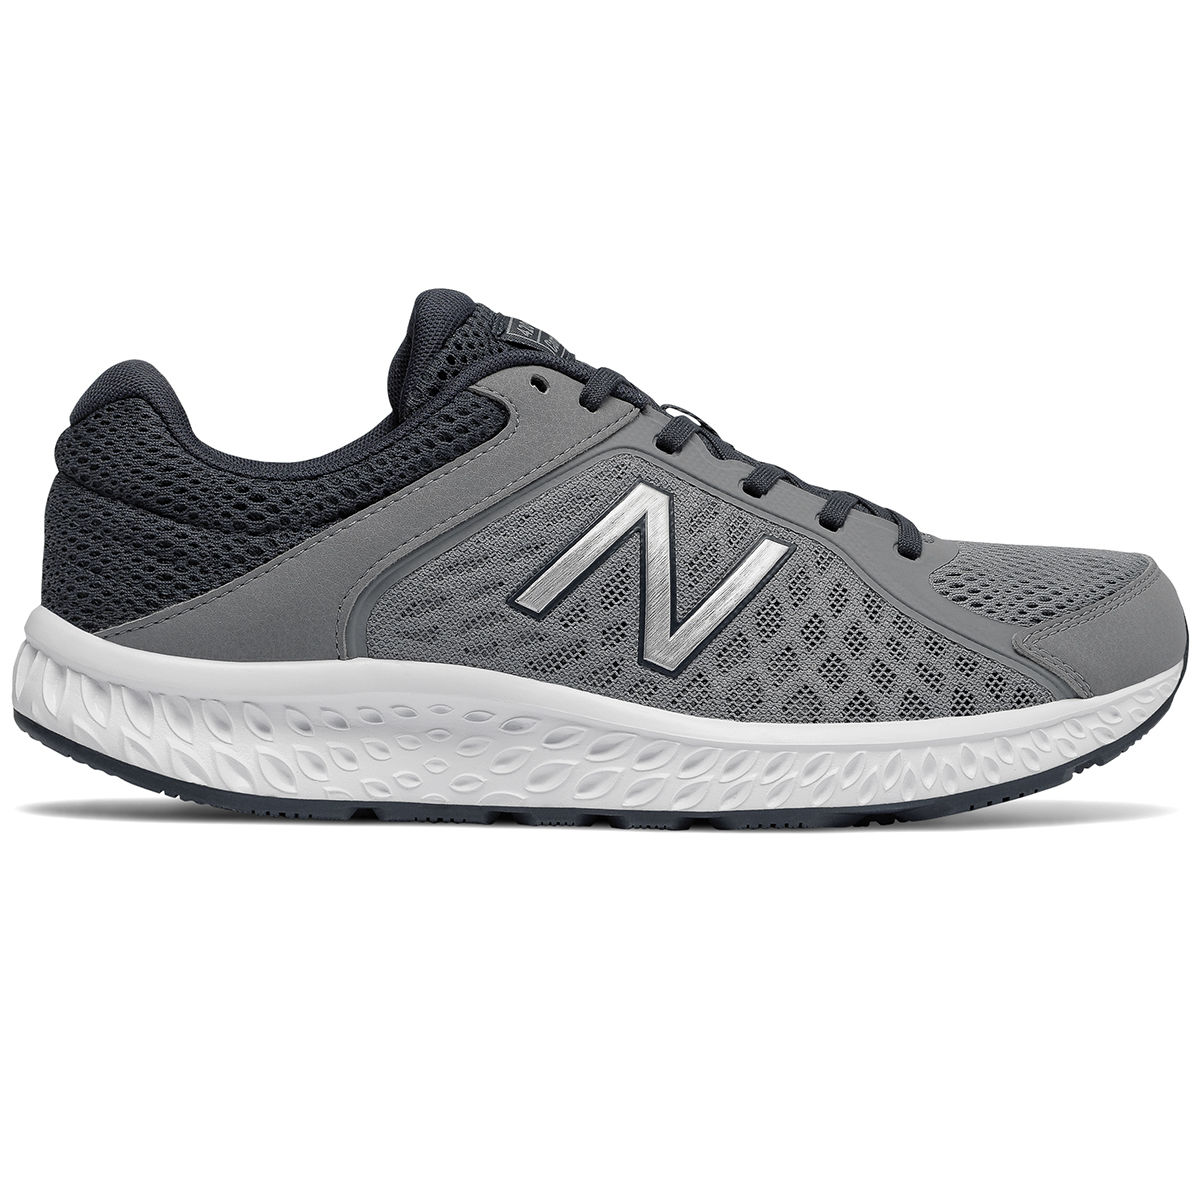 New Balance Men's 420V4 Running Shoes - Black, 9